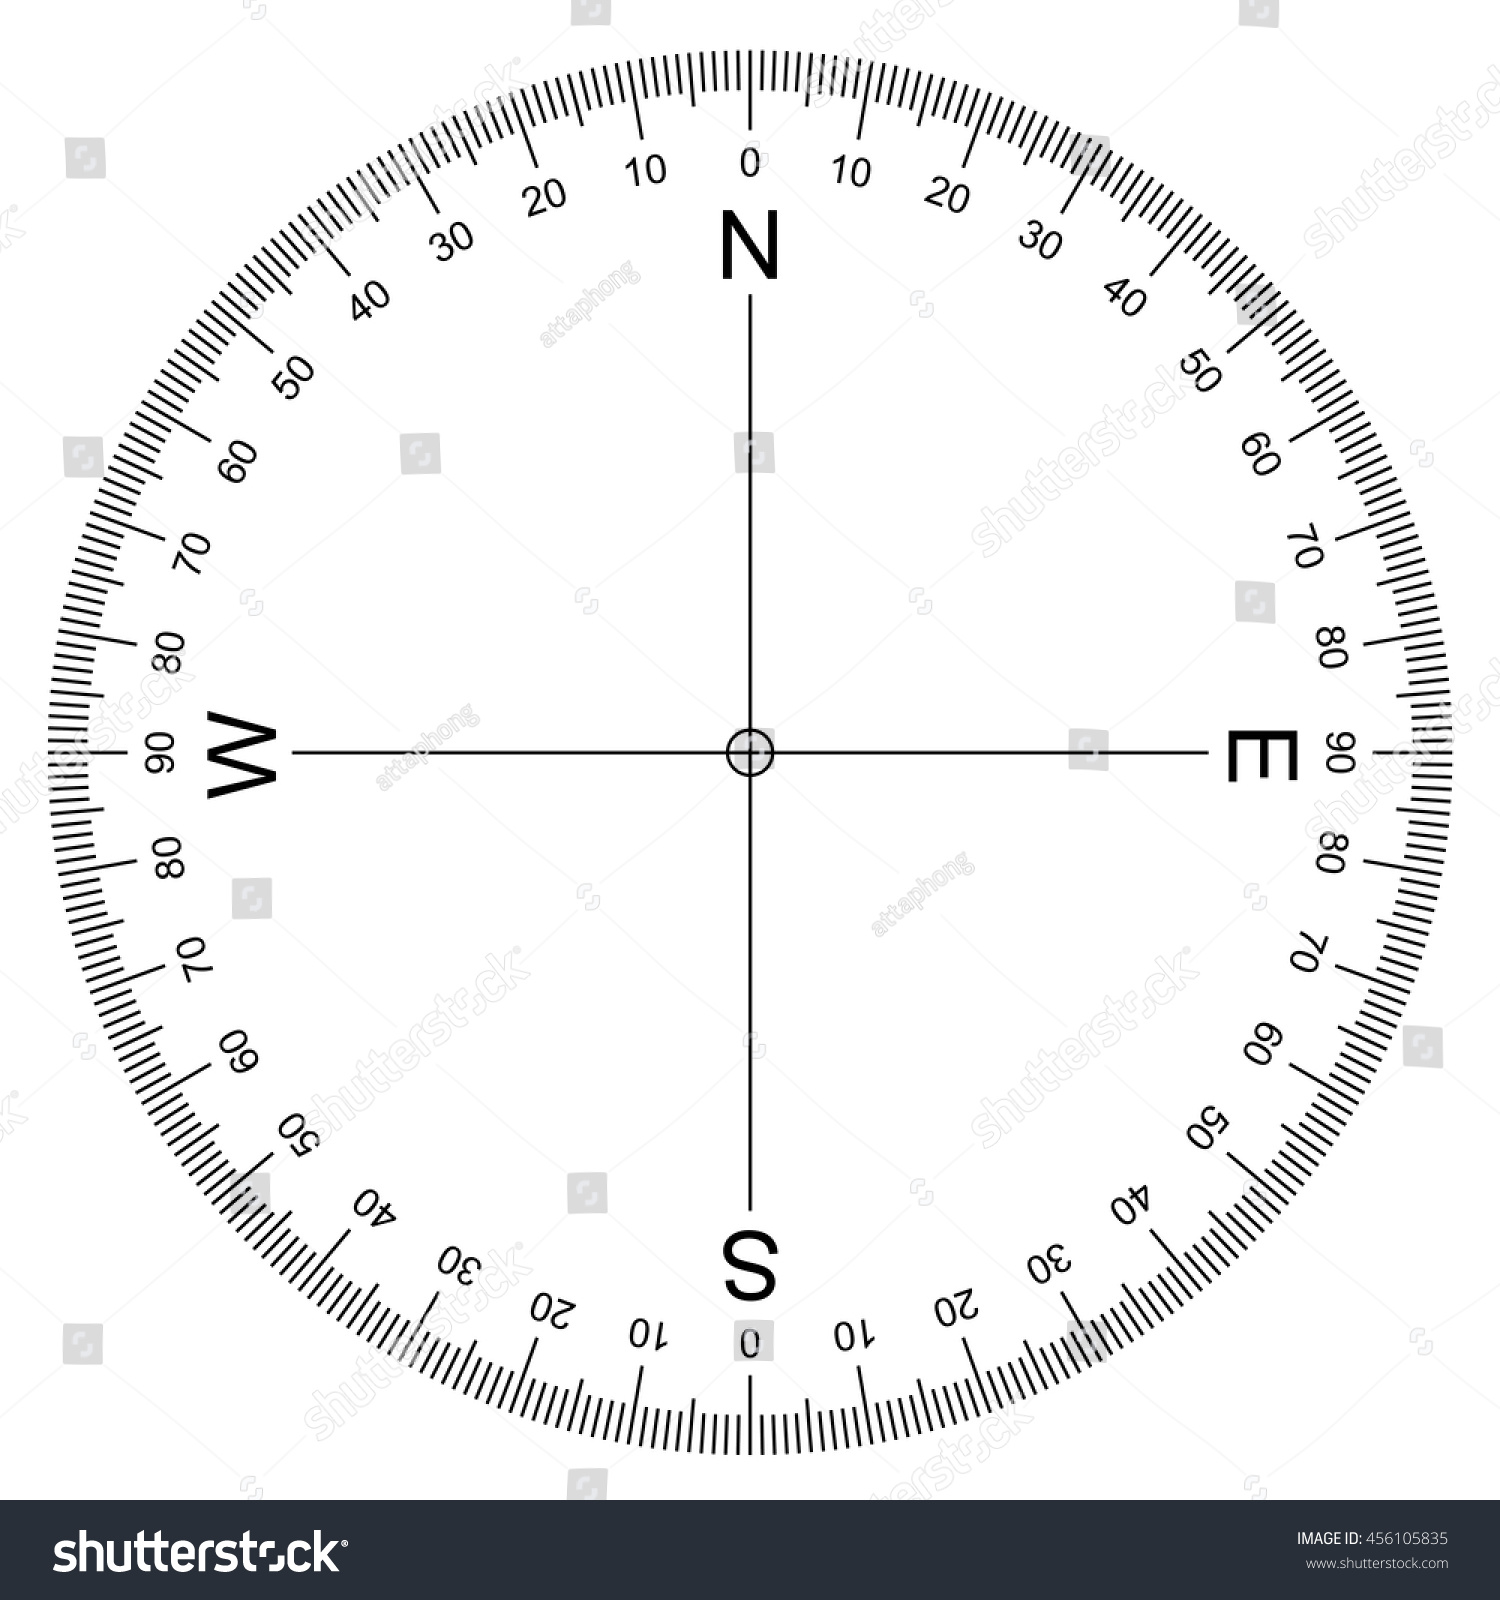 Protractor Print Out 360 Degrees Mixed Addition